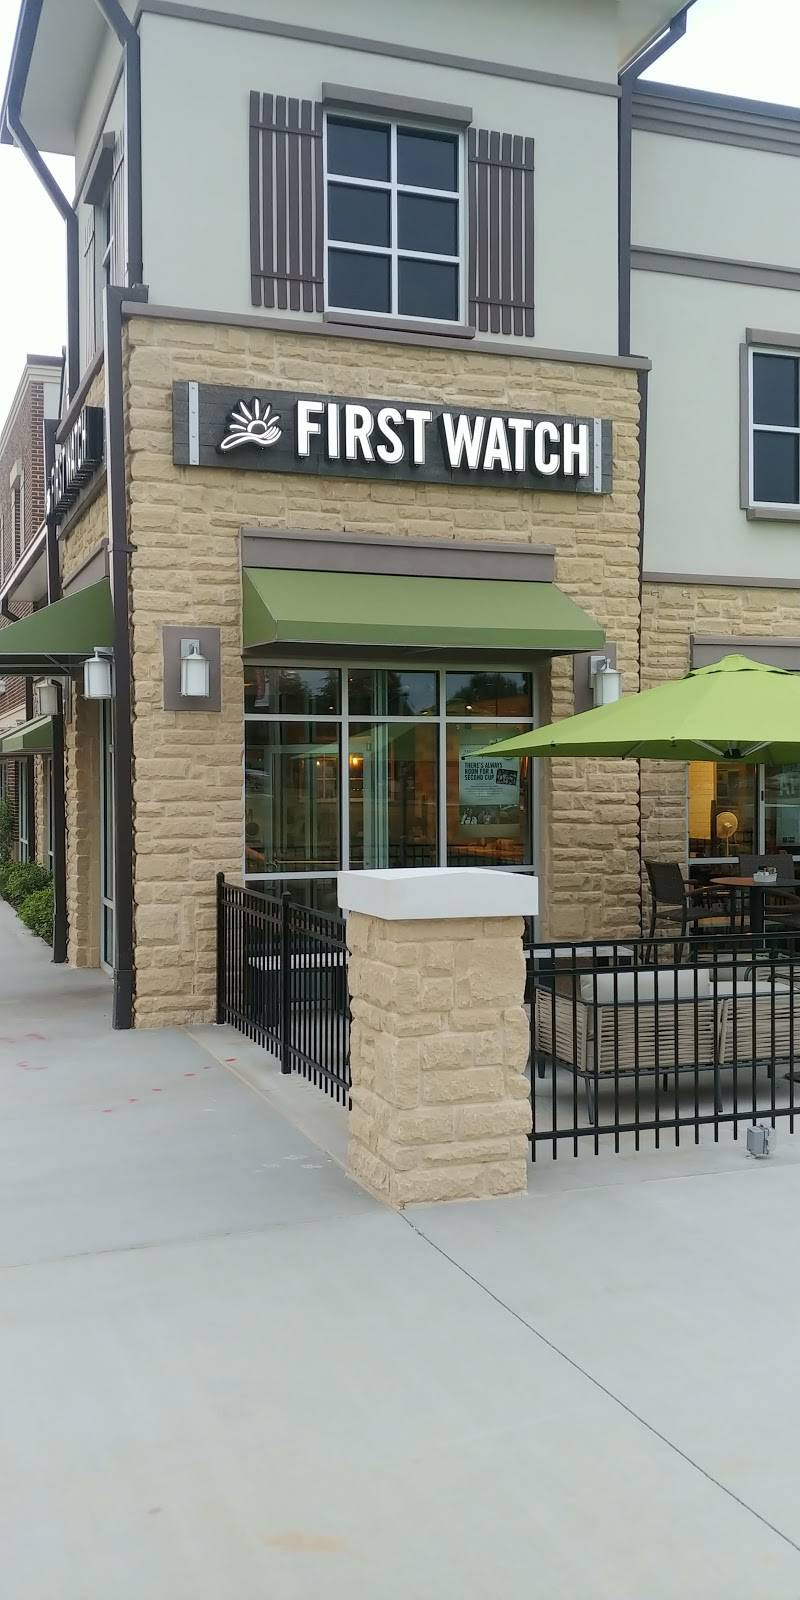 First Watch - Peachtree Corners | restaurant | 5230 Town Center Blvd Ste 110, Peachtree Corners, GA 30092, USA | 4707819190 OR +1 470-781-9190